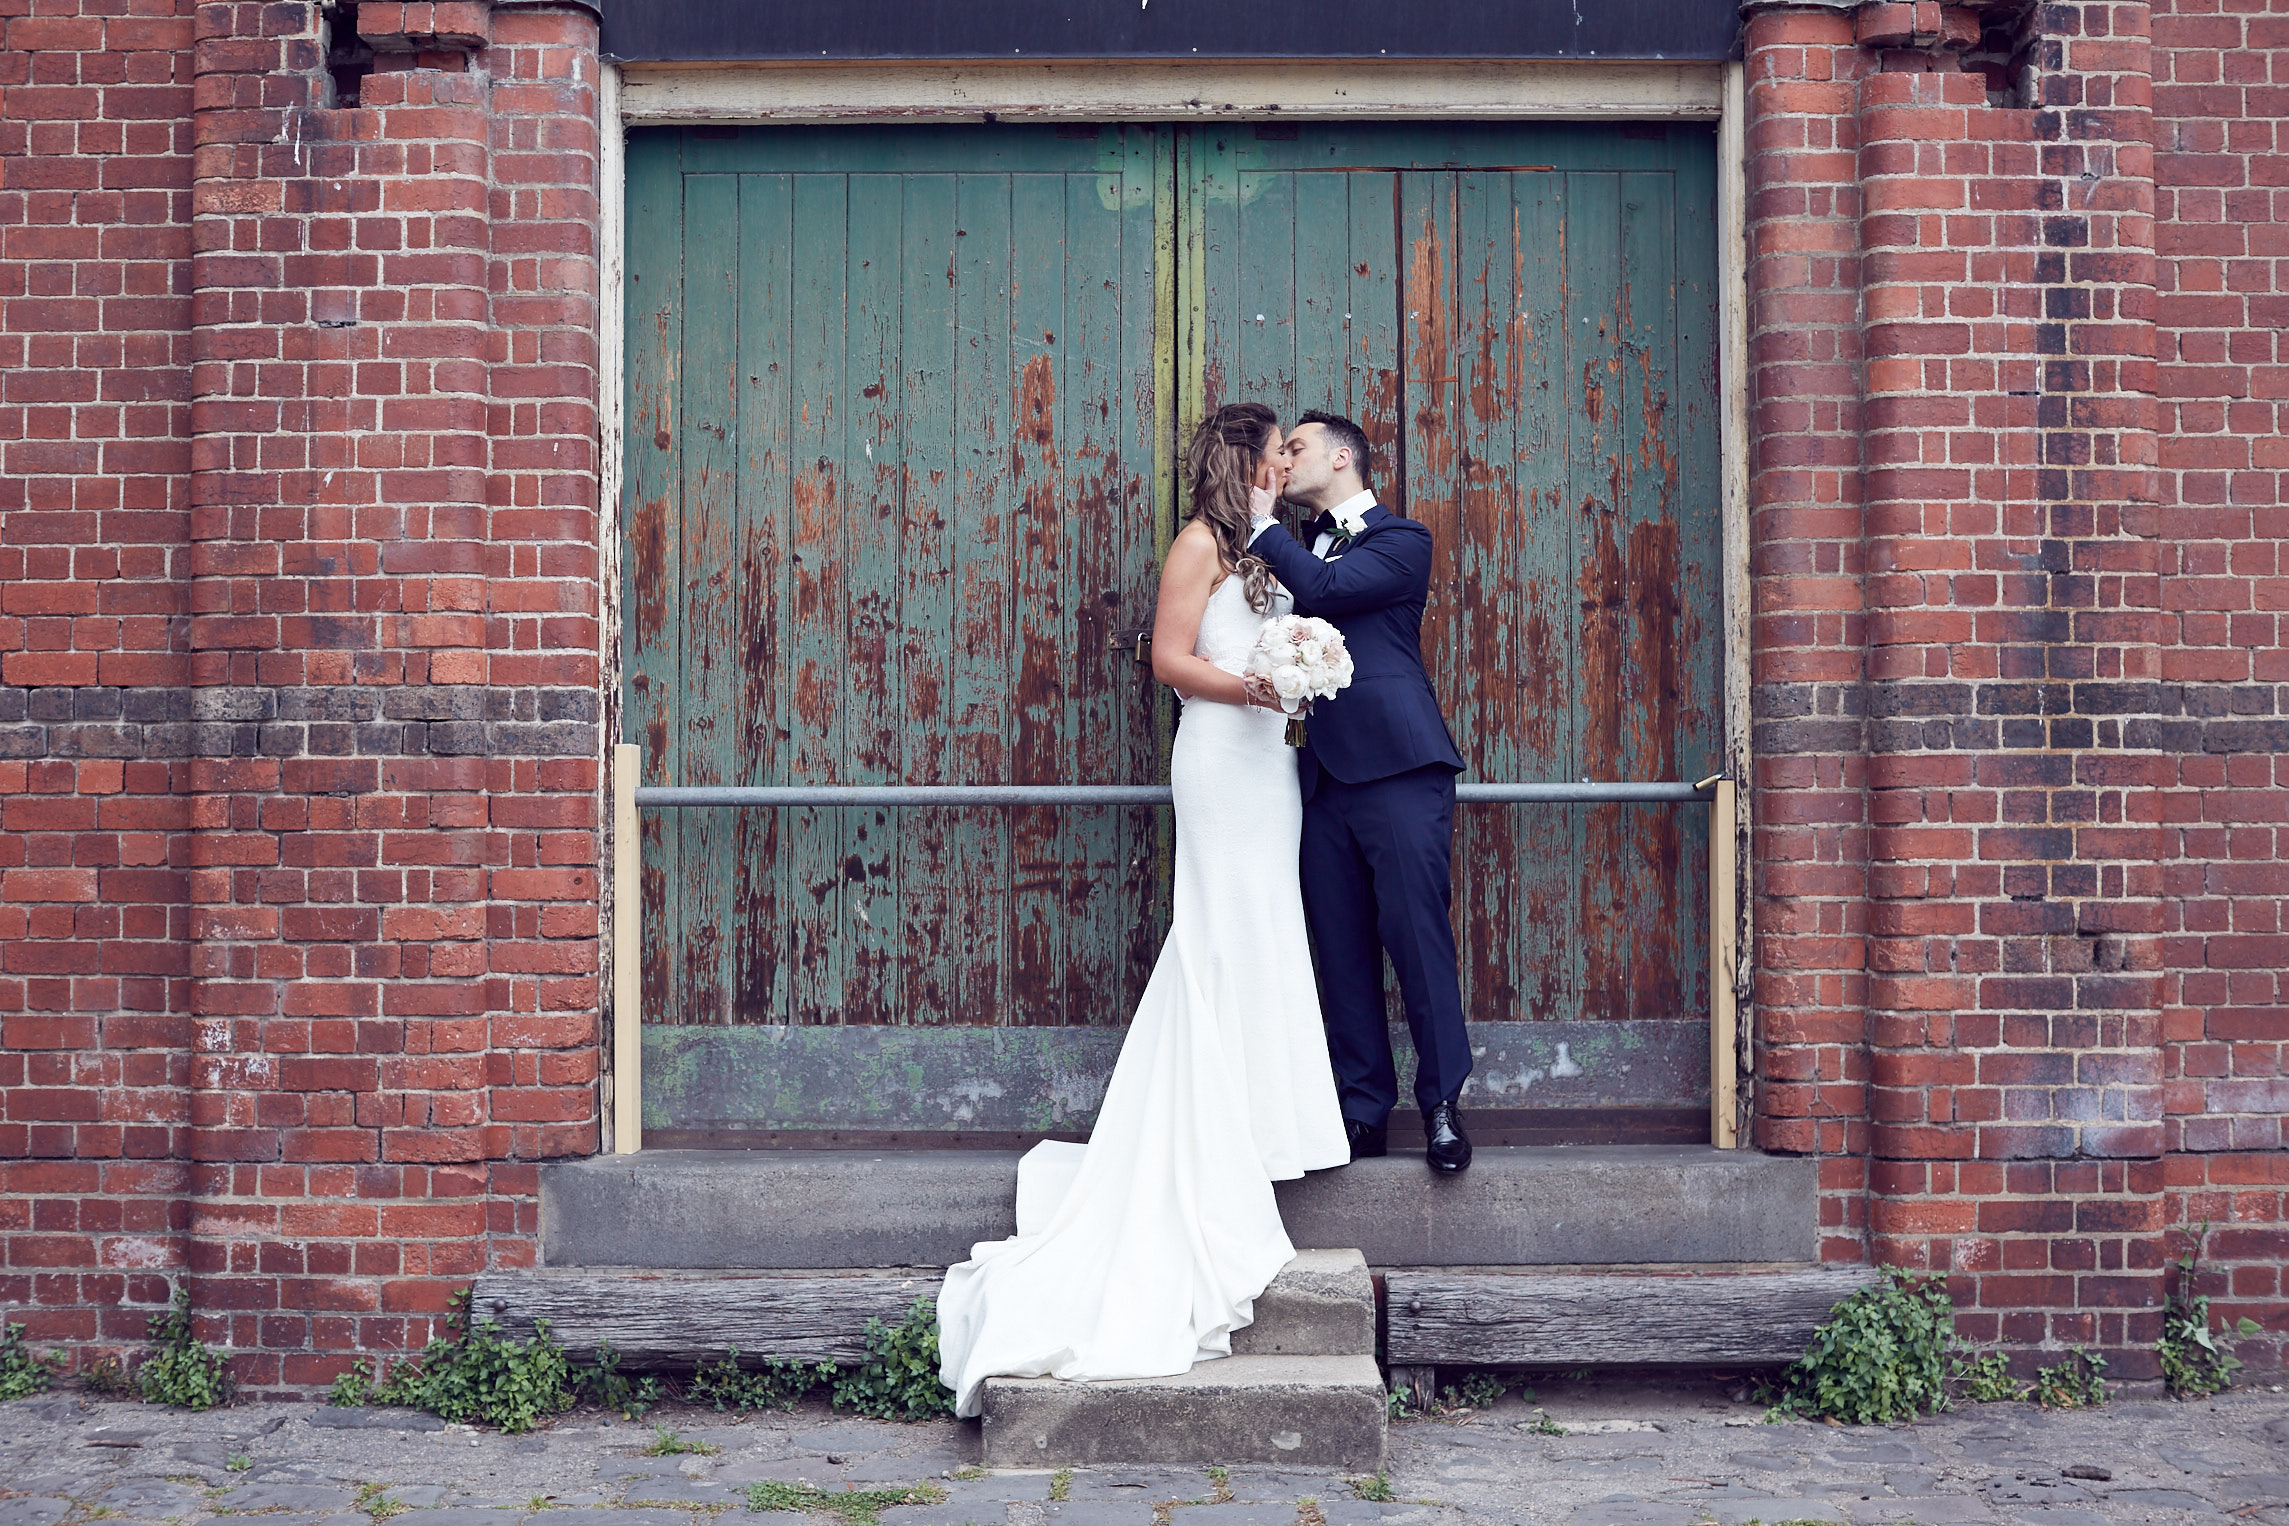 Jess + Peter Abbotsford Convent Wedding by Lost In Love Wedding Photography